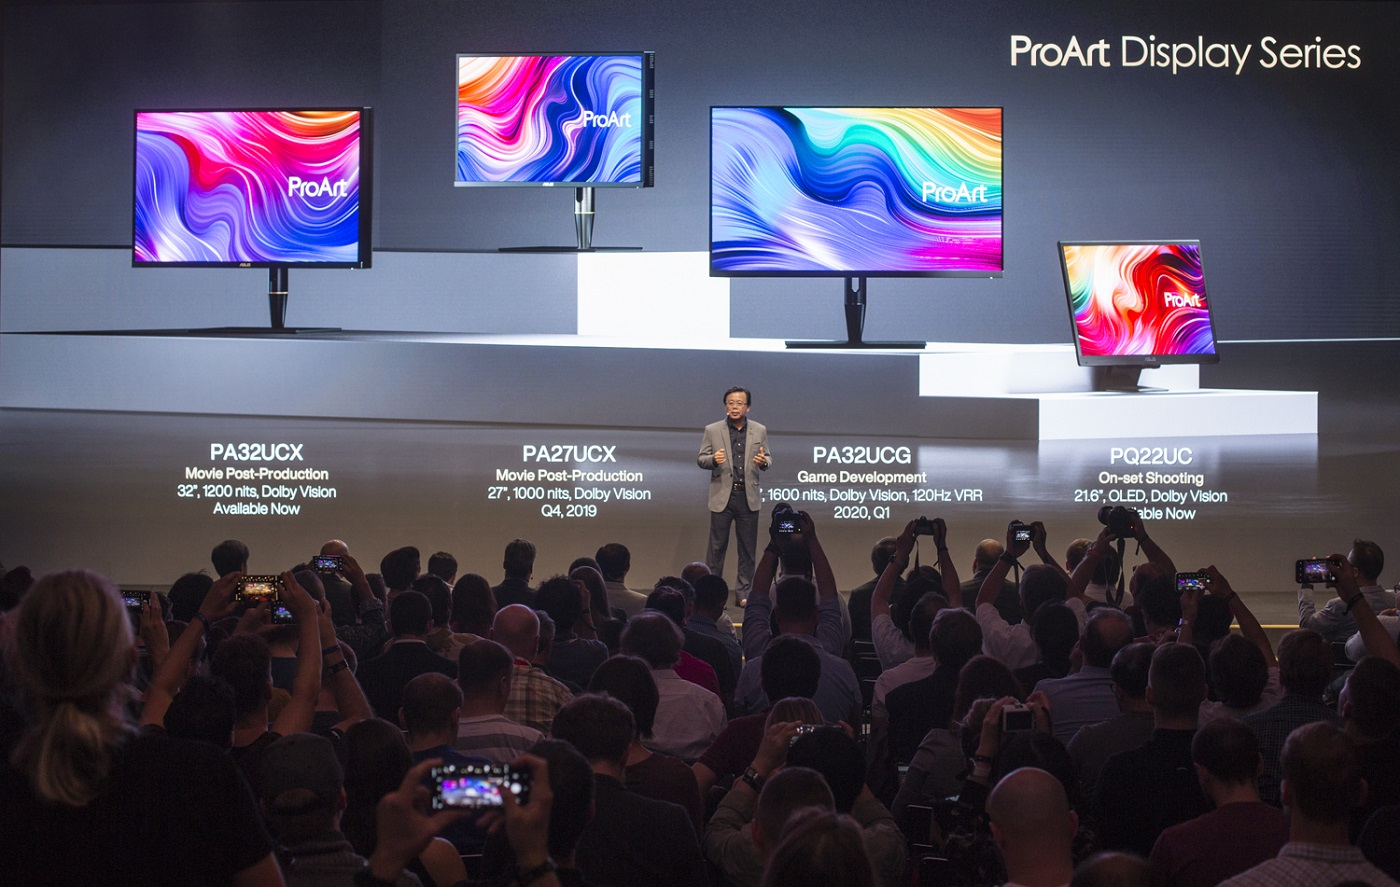 asus-announces-a-full-lineup-of-proart-displays-at-ifa-2019-jpg.8060